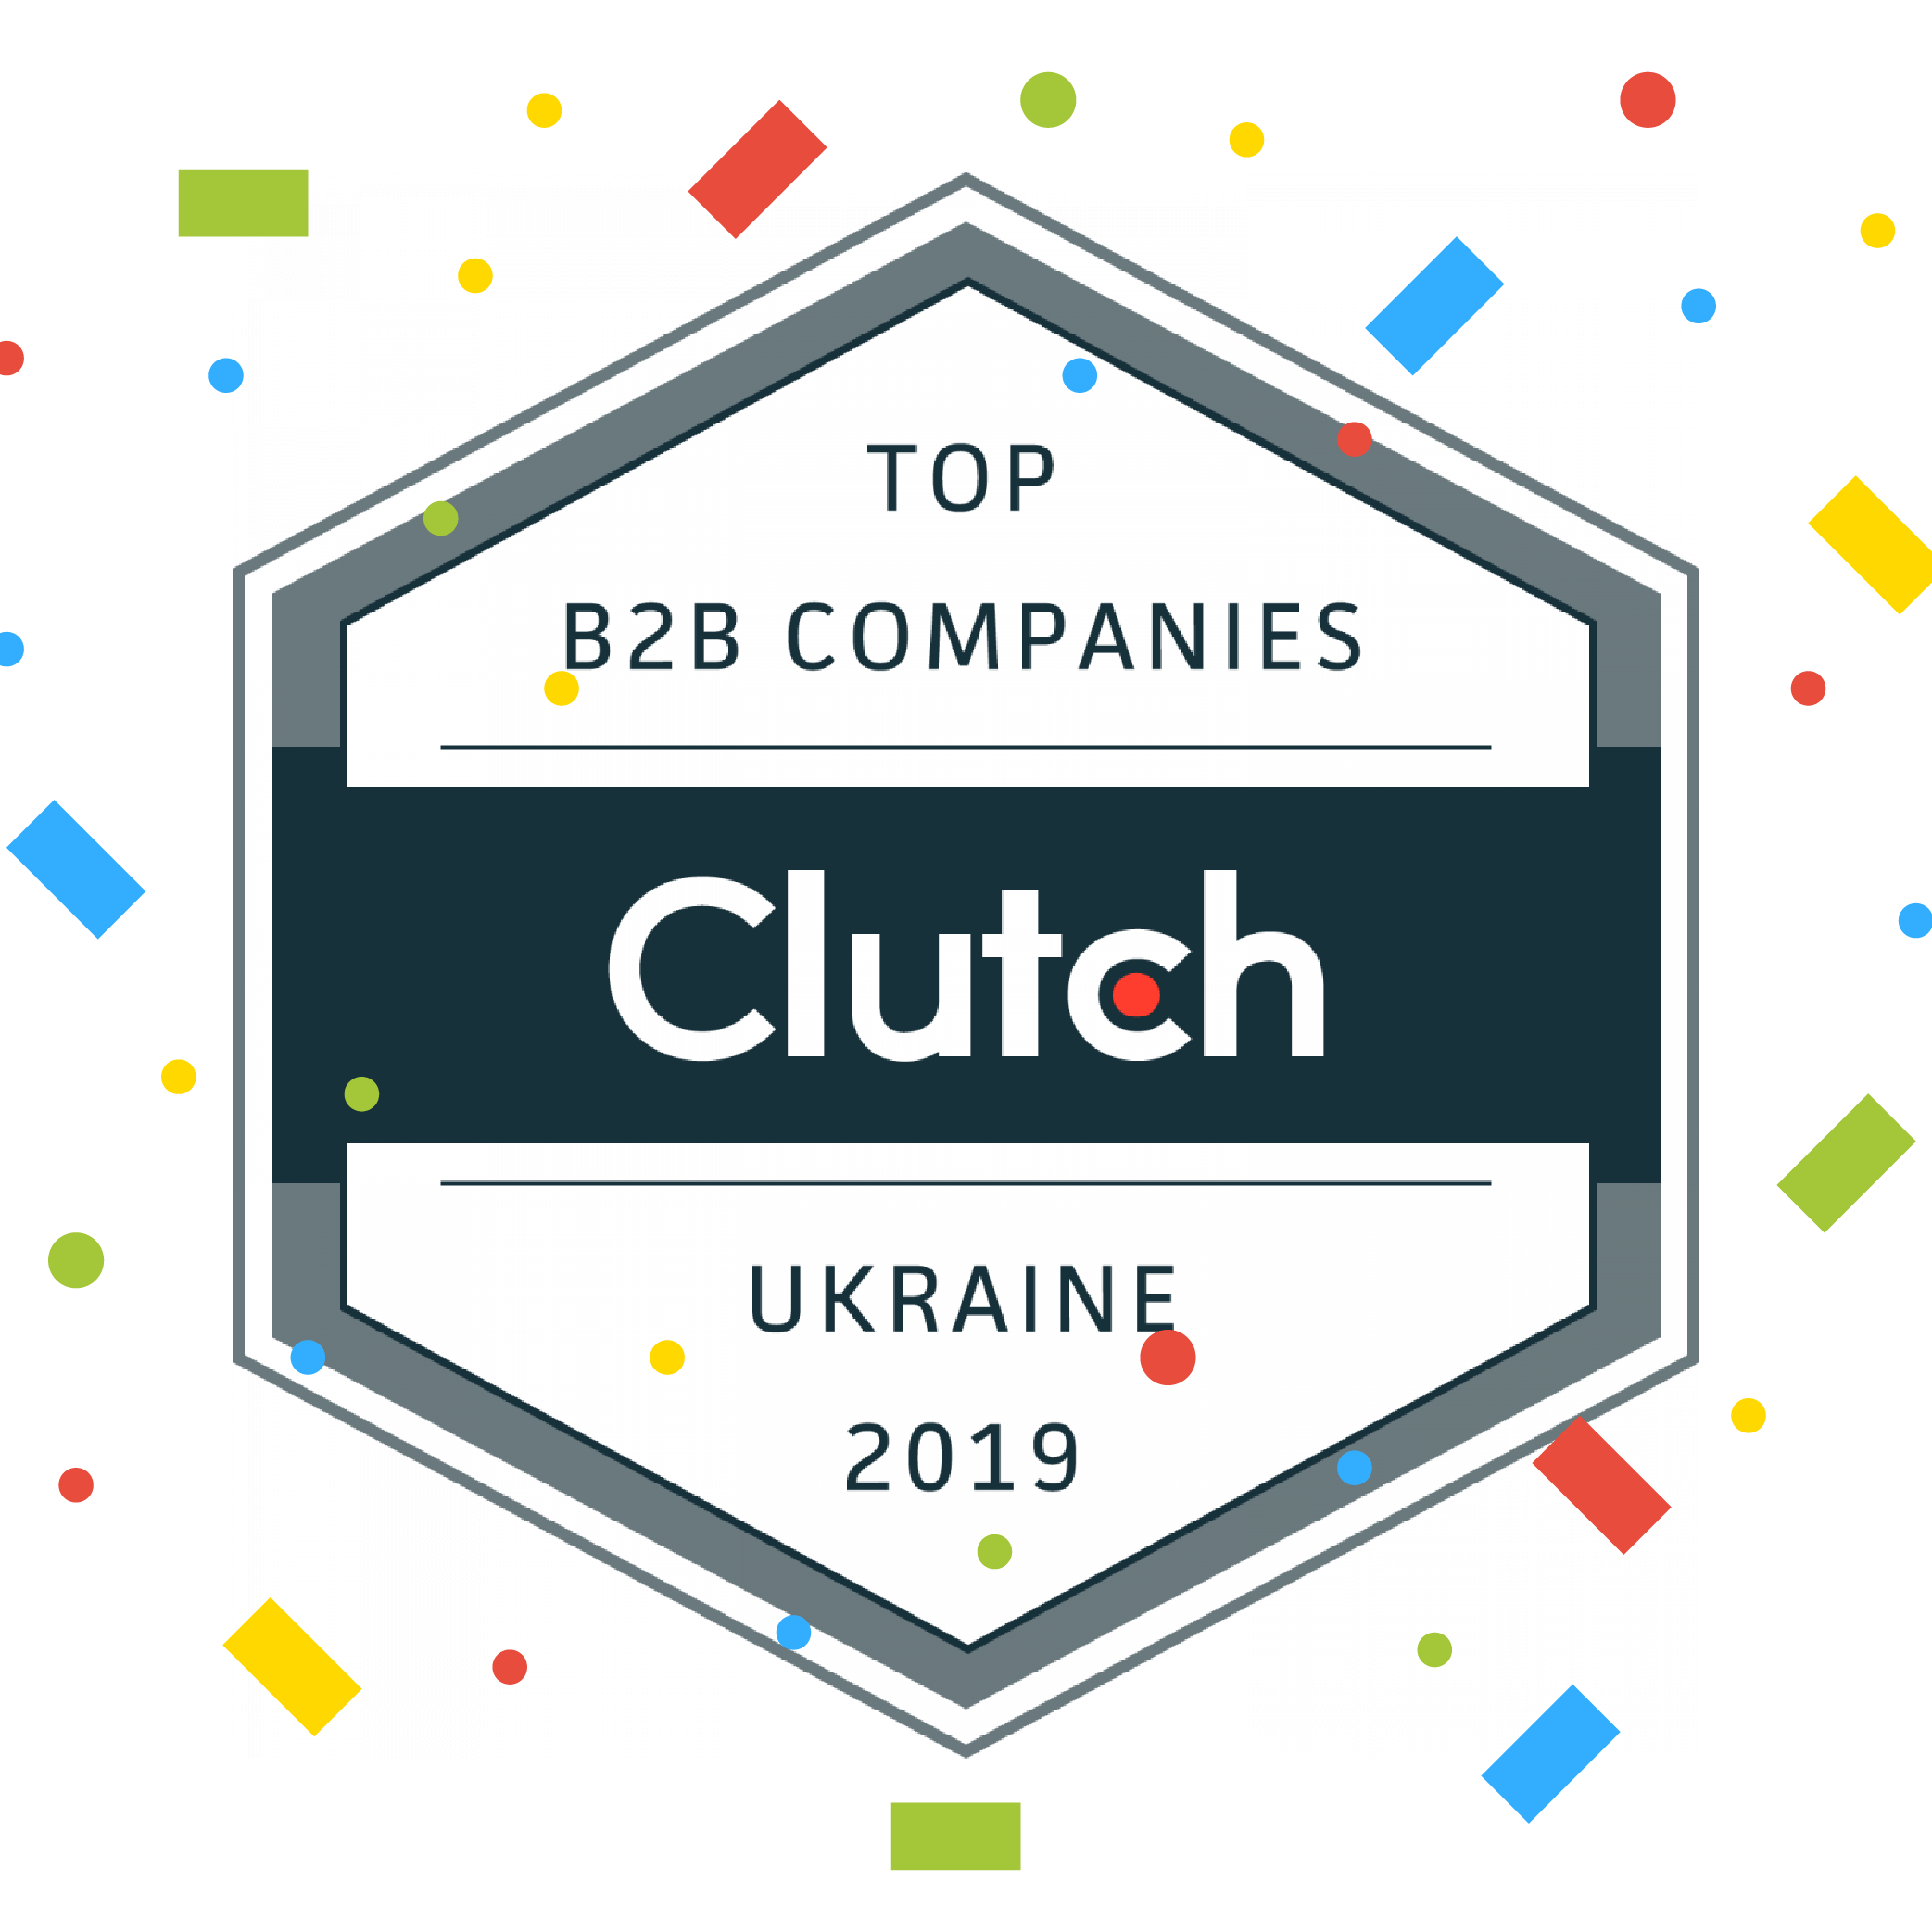 Cleveroad is one of the Ukraine's top B2B companies according to Clutch